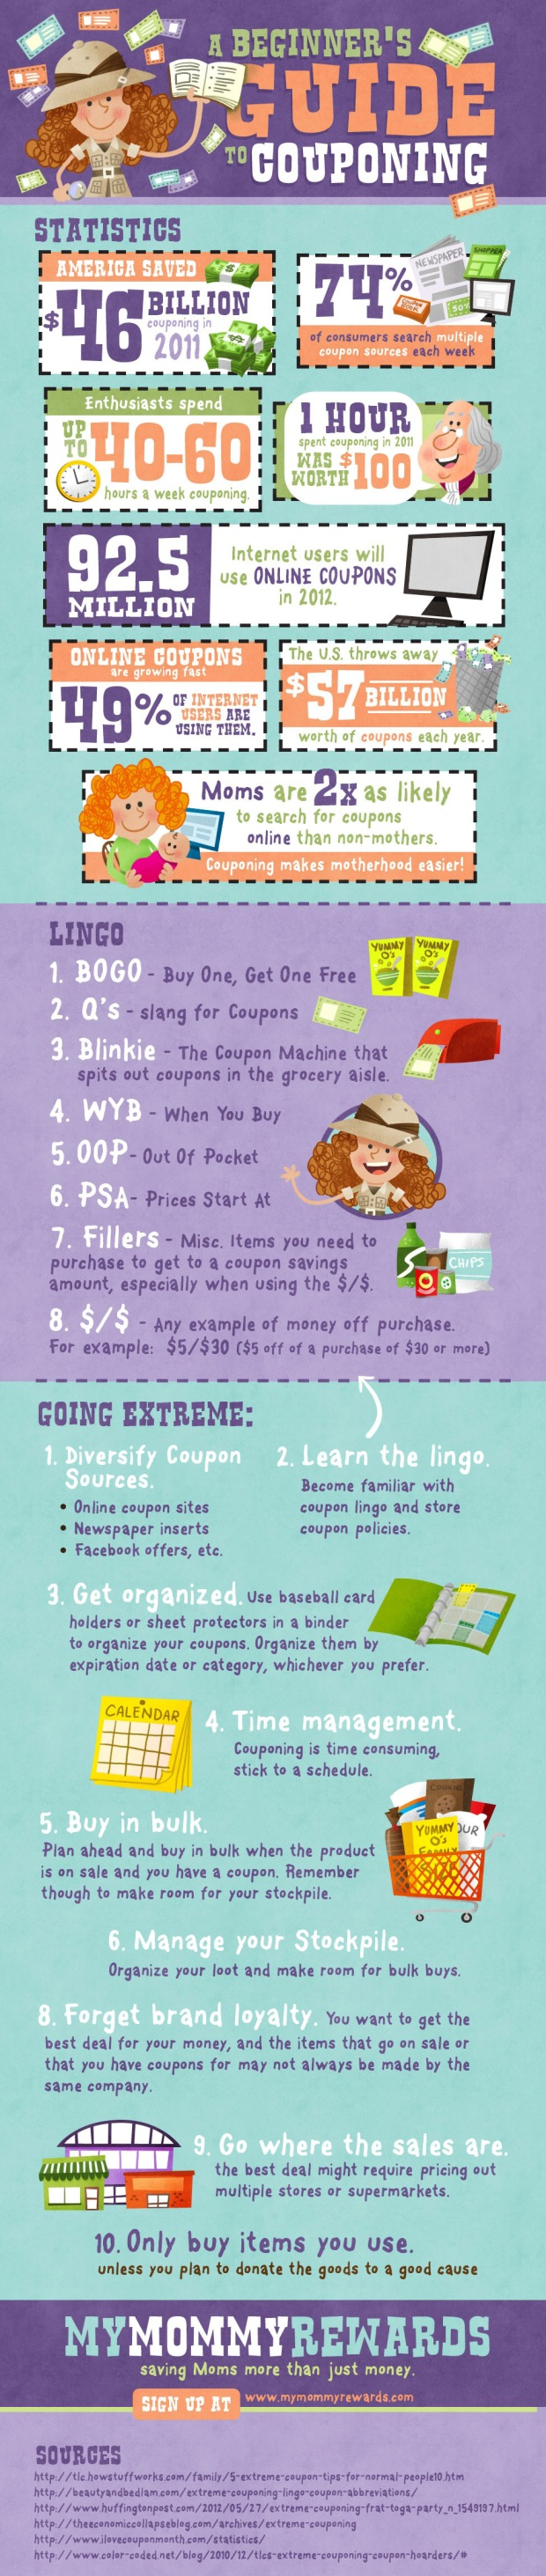 A Beginners Guide To Couponing